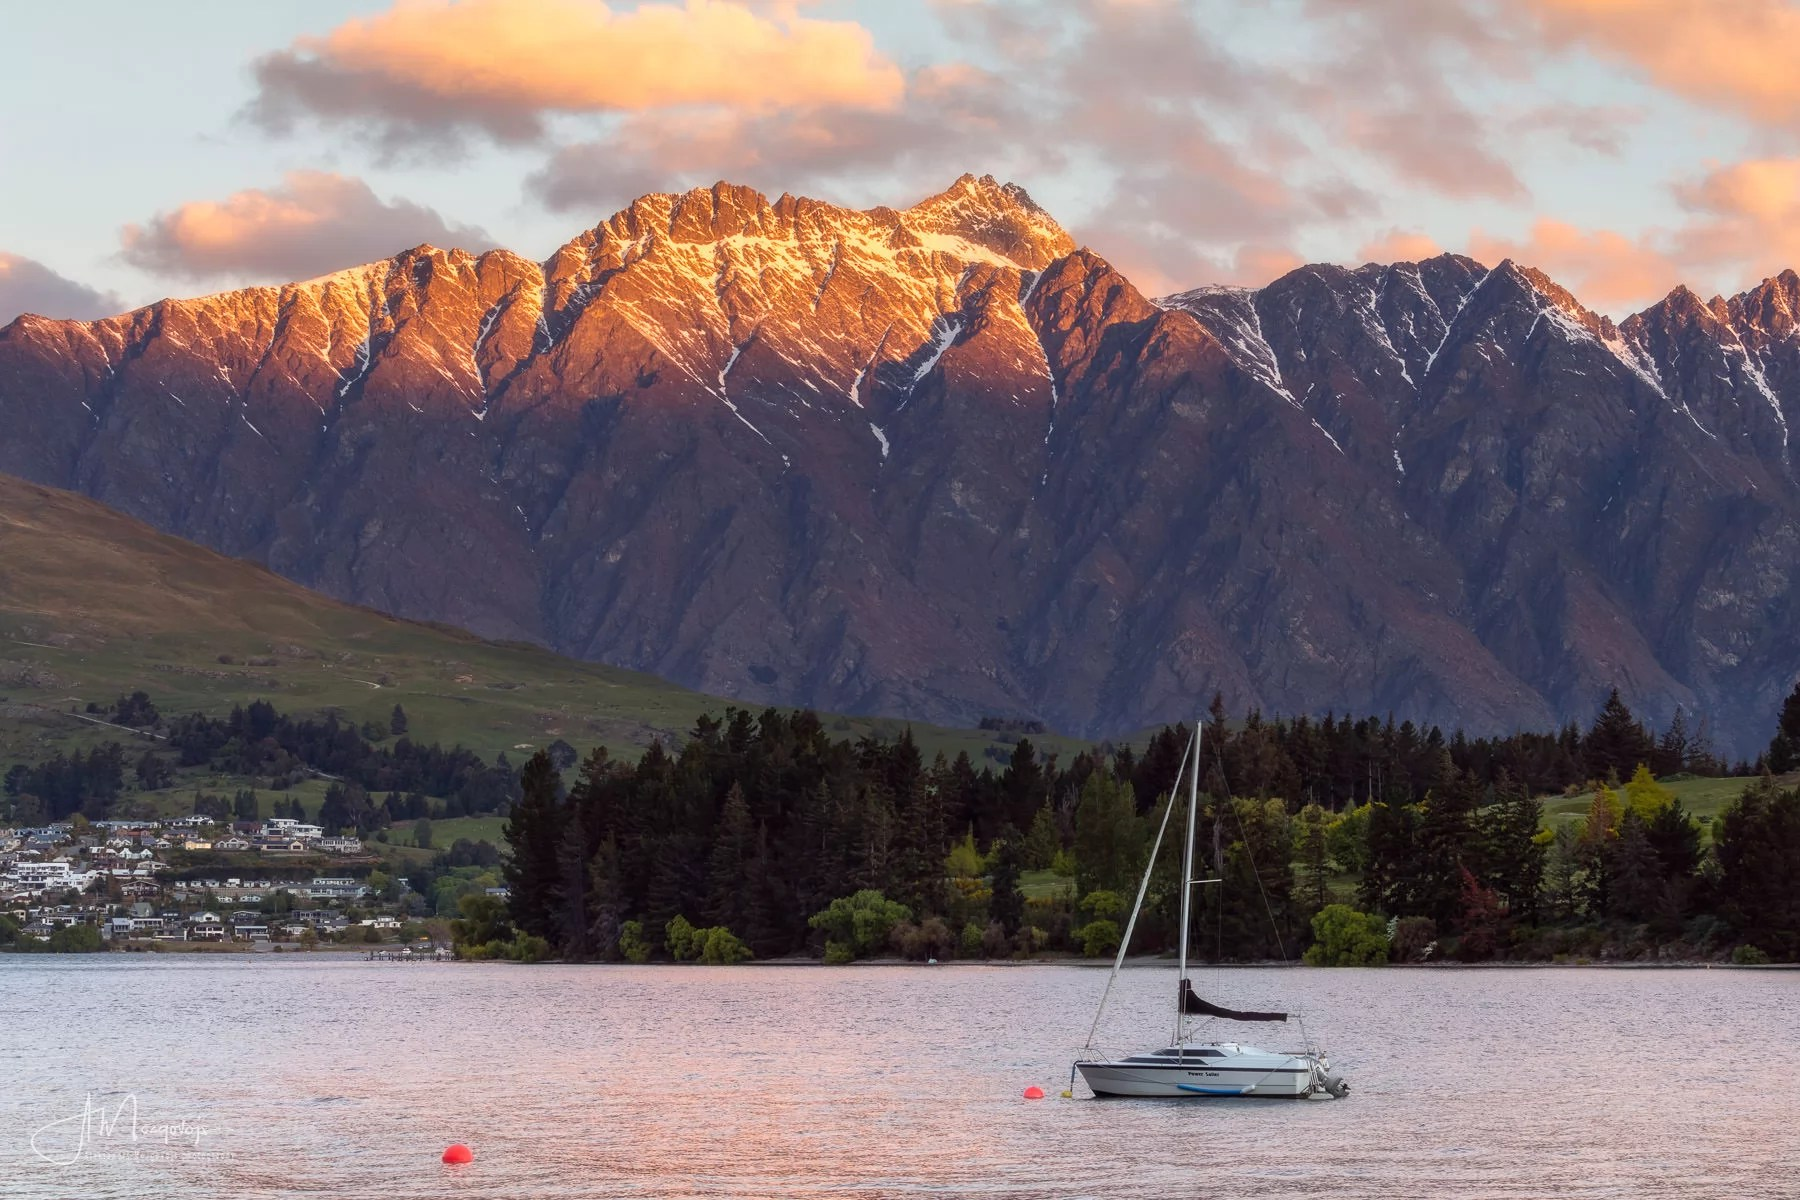 Queenstown Gardens is one of the best landscape photography locations in Queenstown